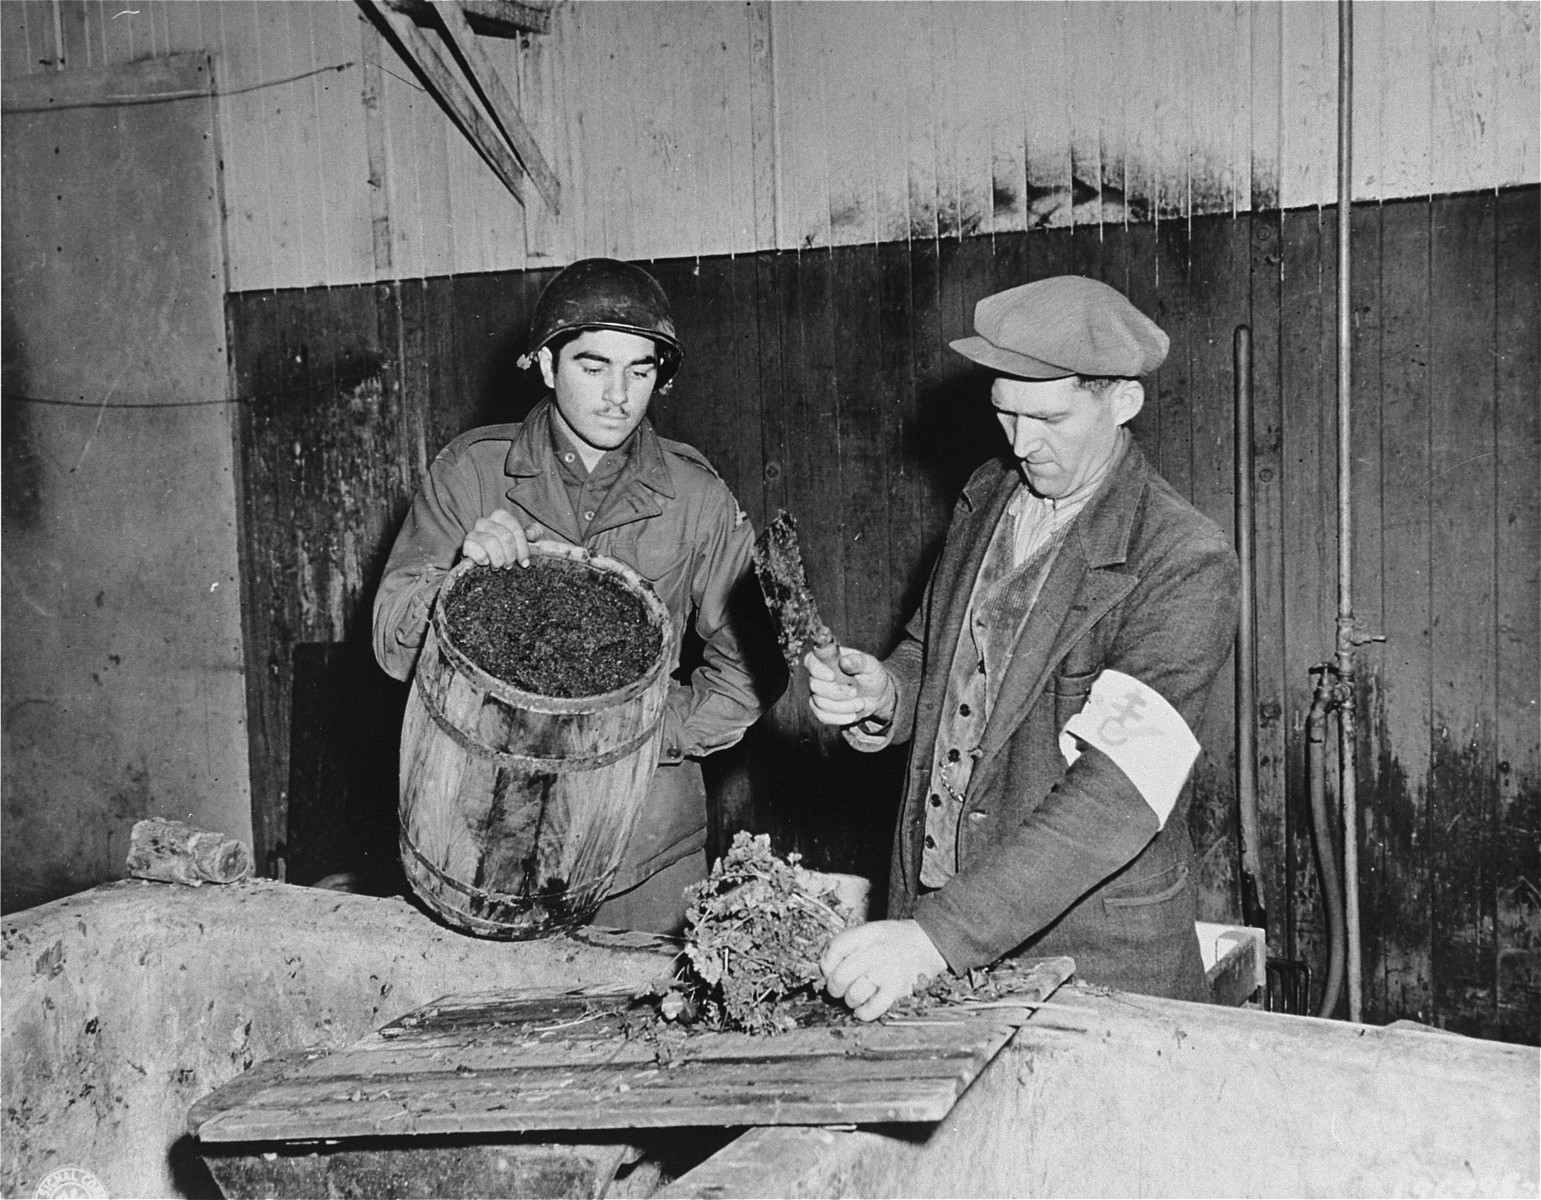 A member of the French resistance demonstrates for an American soldier the method of preparing chopped potatoes, the staple of the inmates' diet.